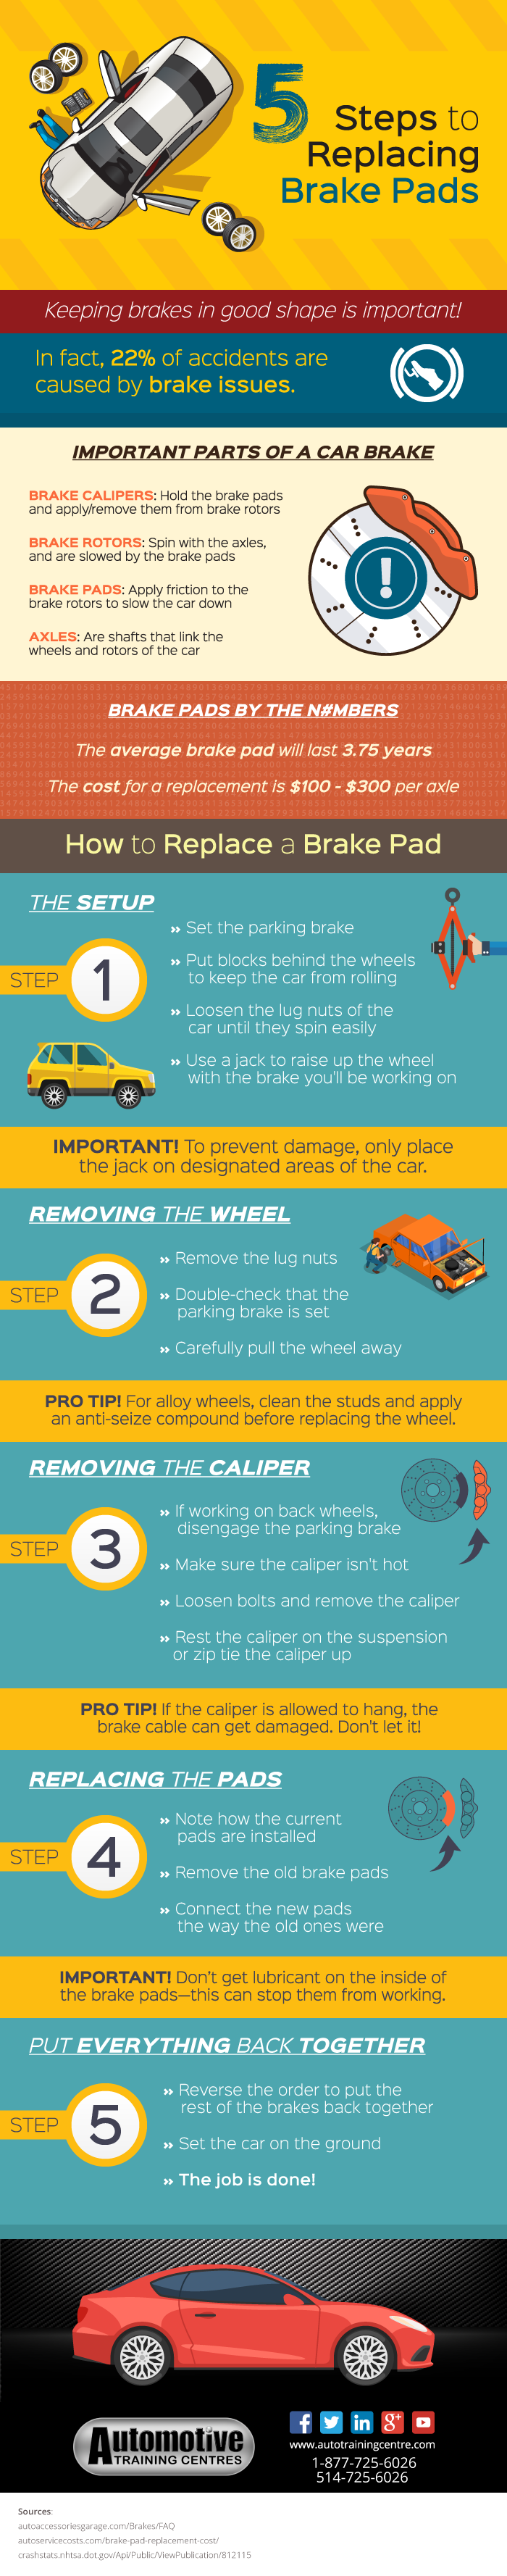 ATC Montreal_Infographic_5 Steps to Replacing Brake Pads